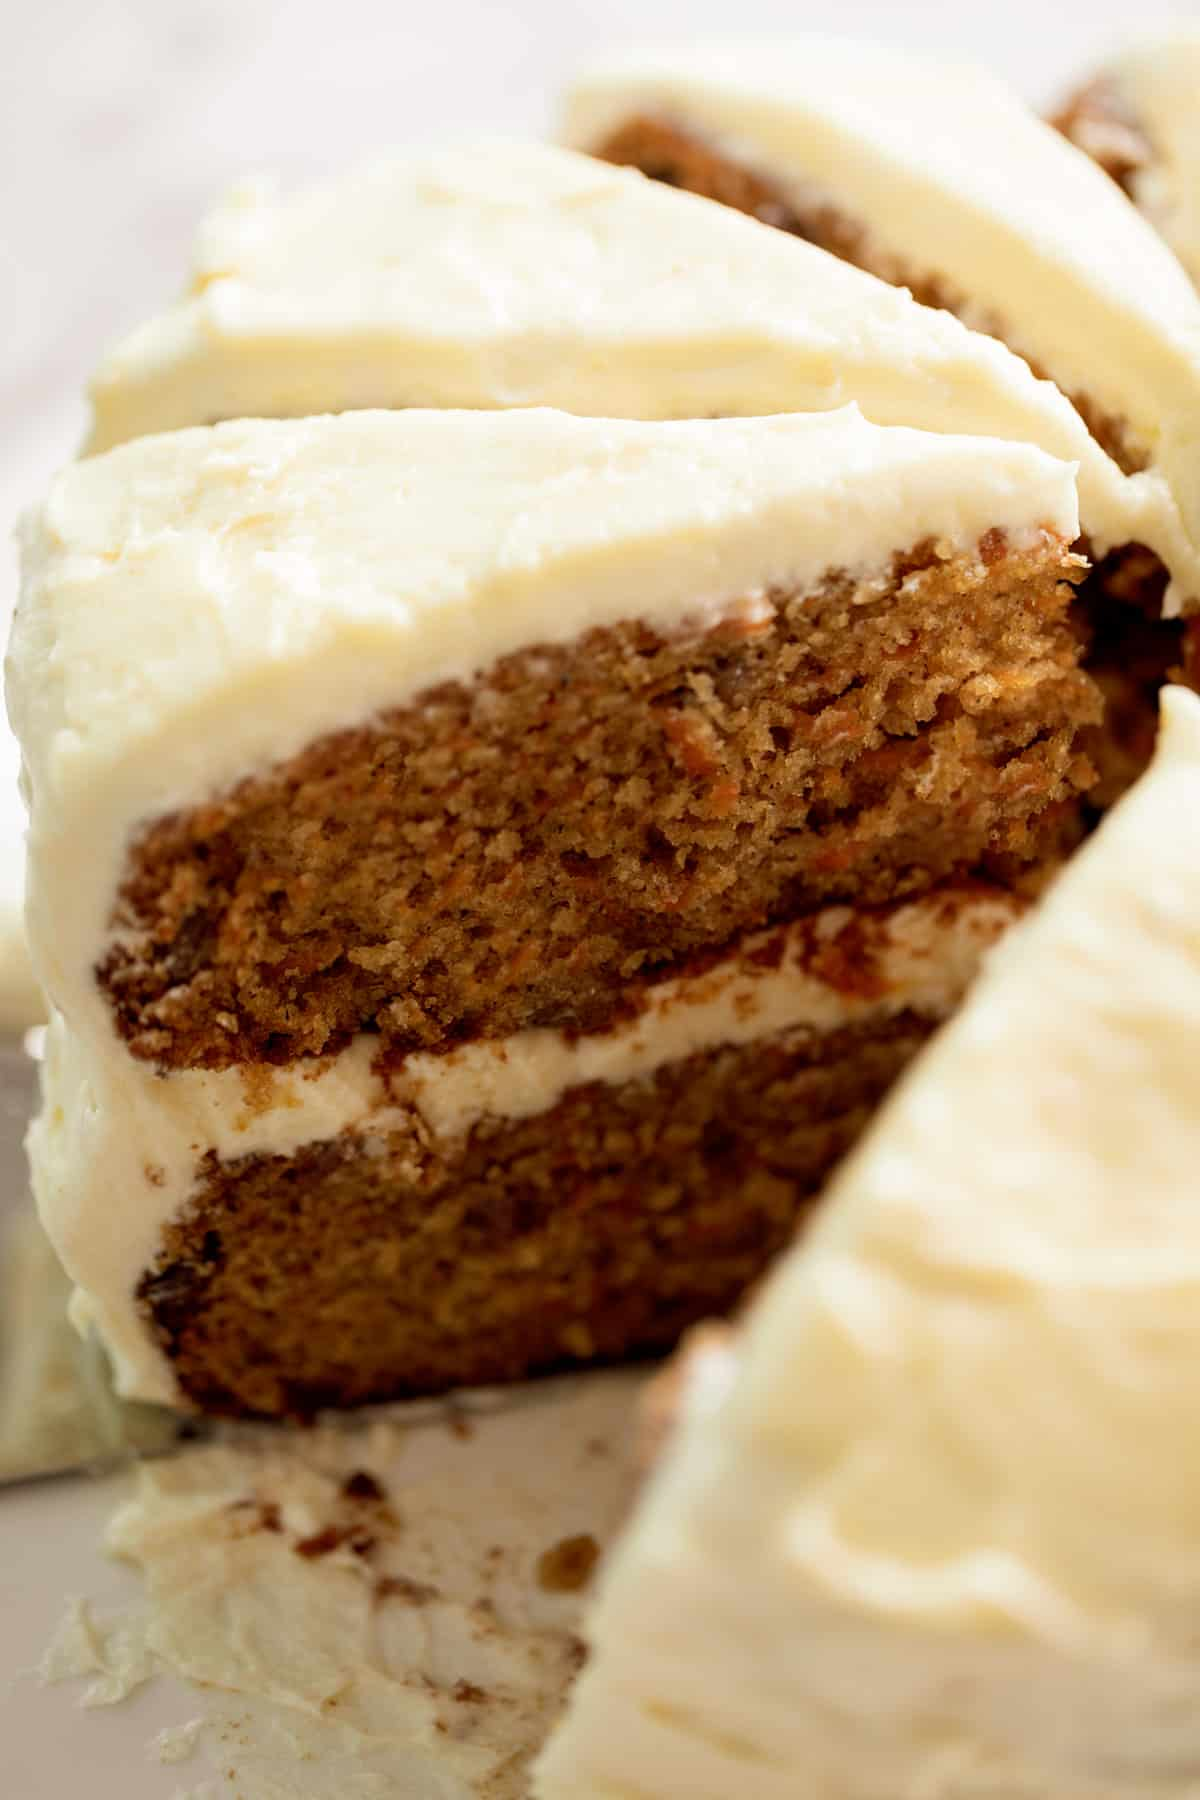 Carrot cake cut into slices | cafedelites.com